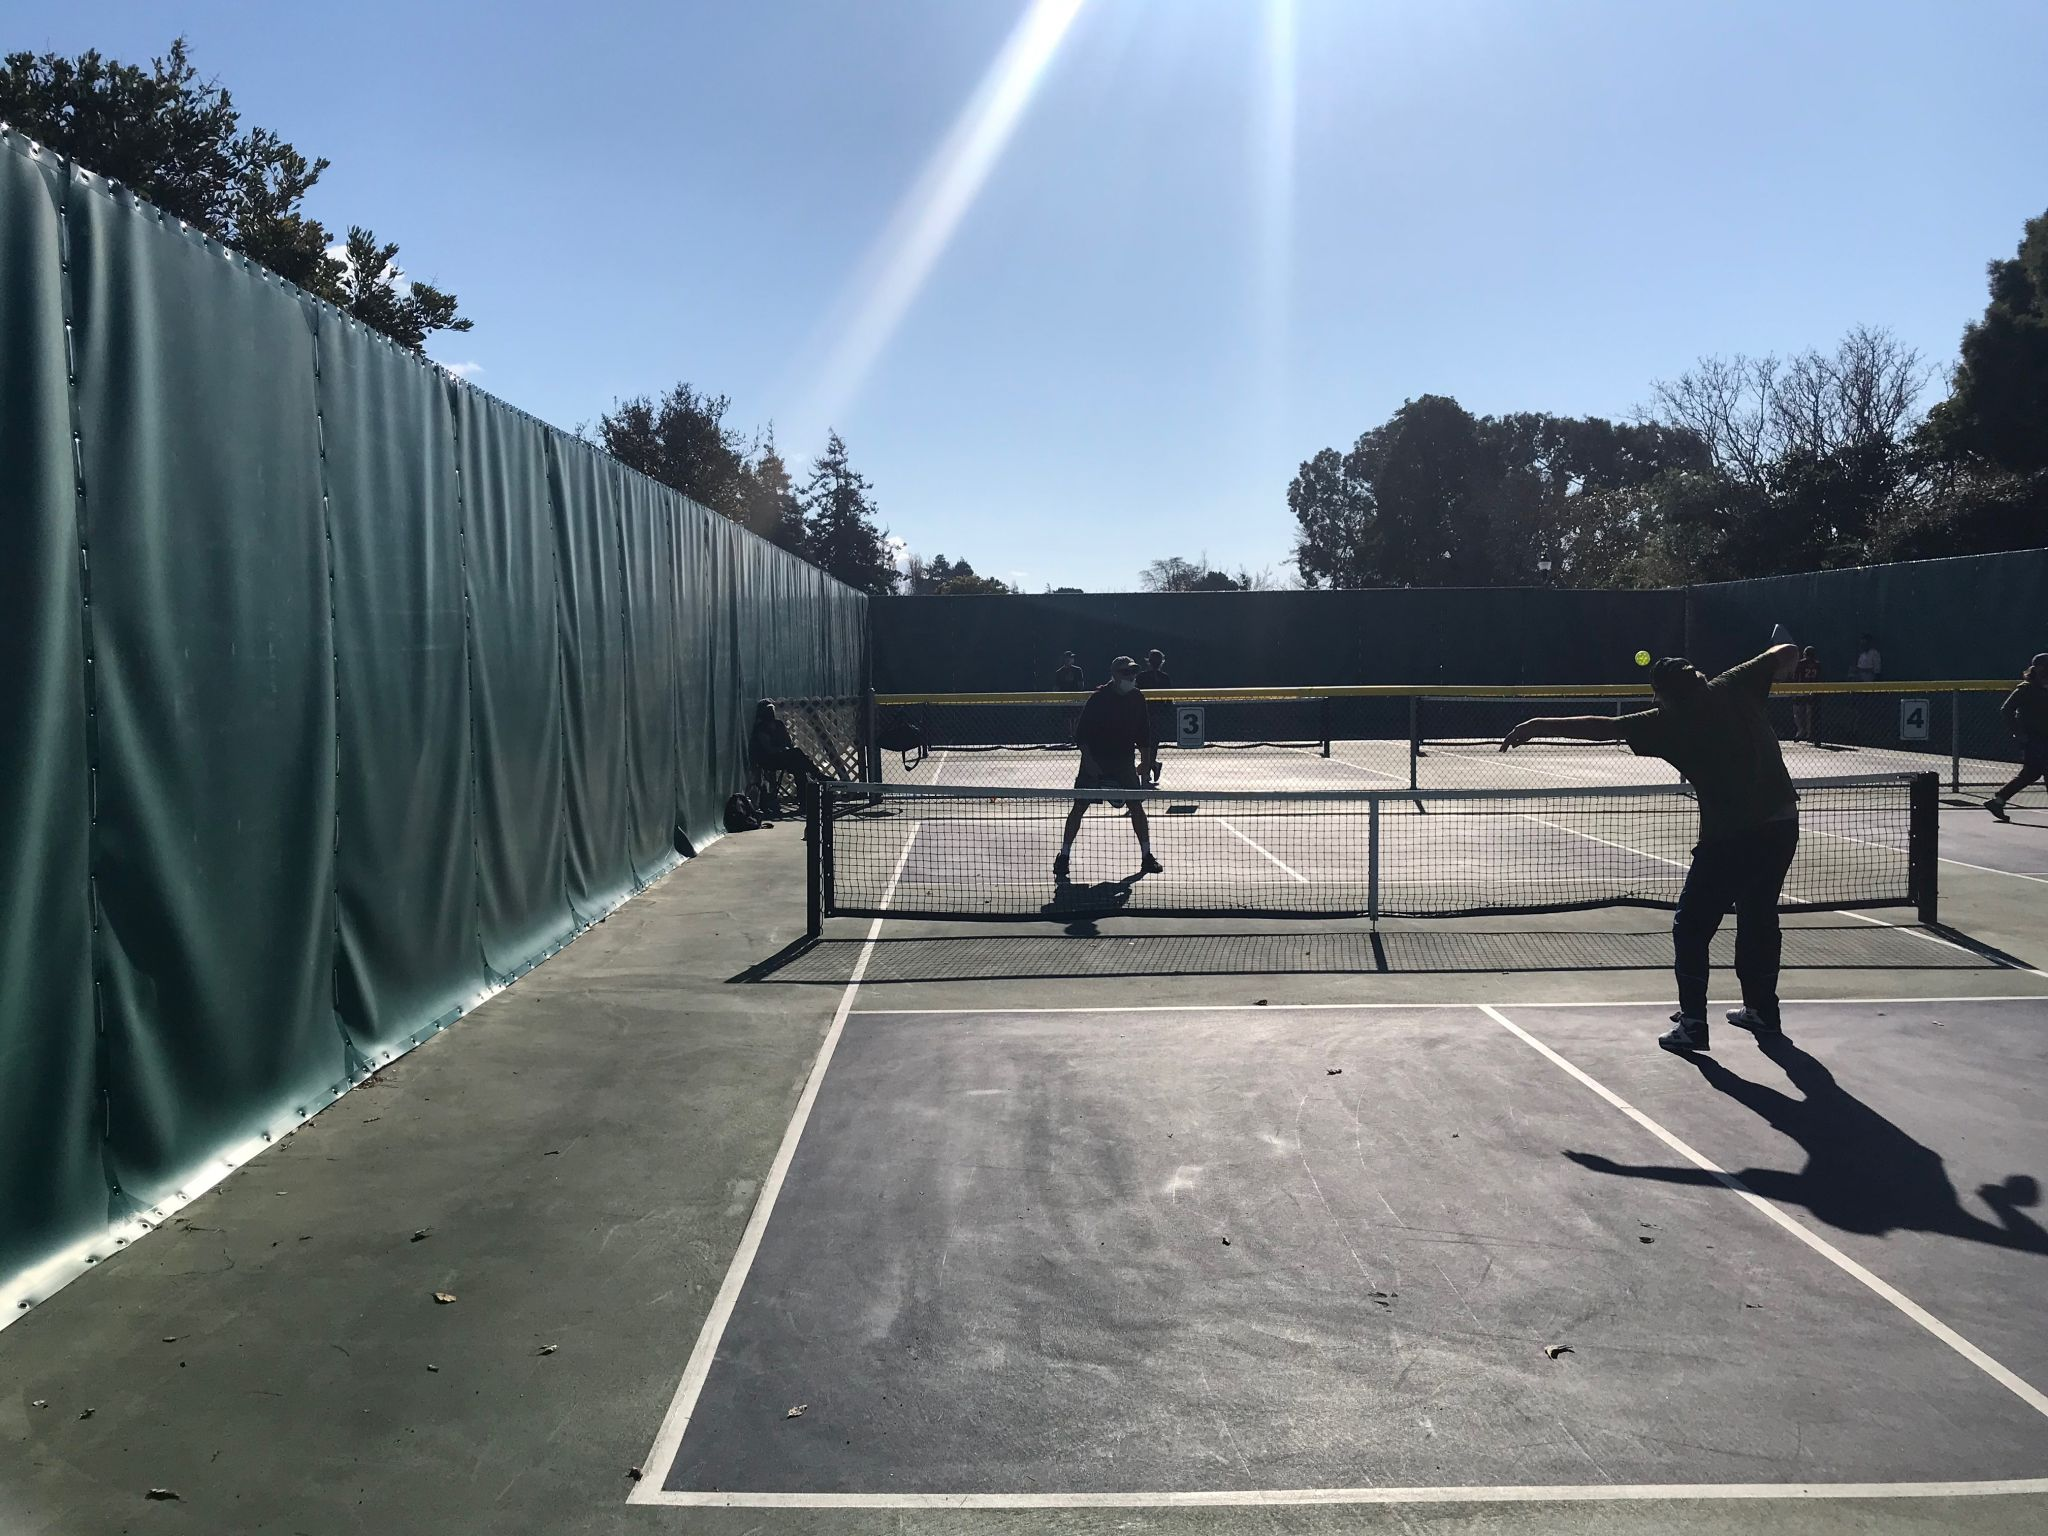 Pickleball is invading Bay Area tennis courts. Is that a good thing?